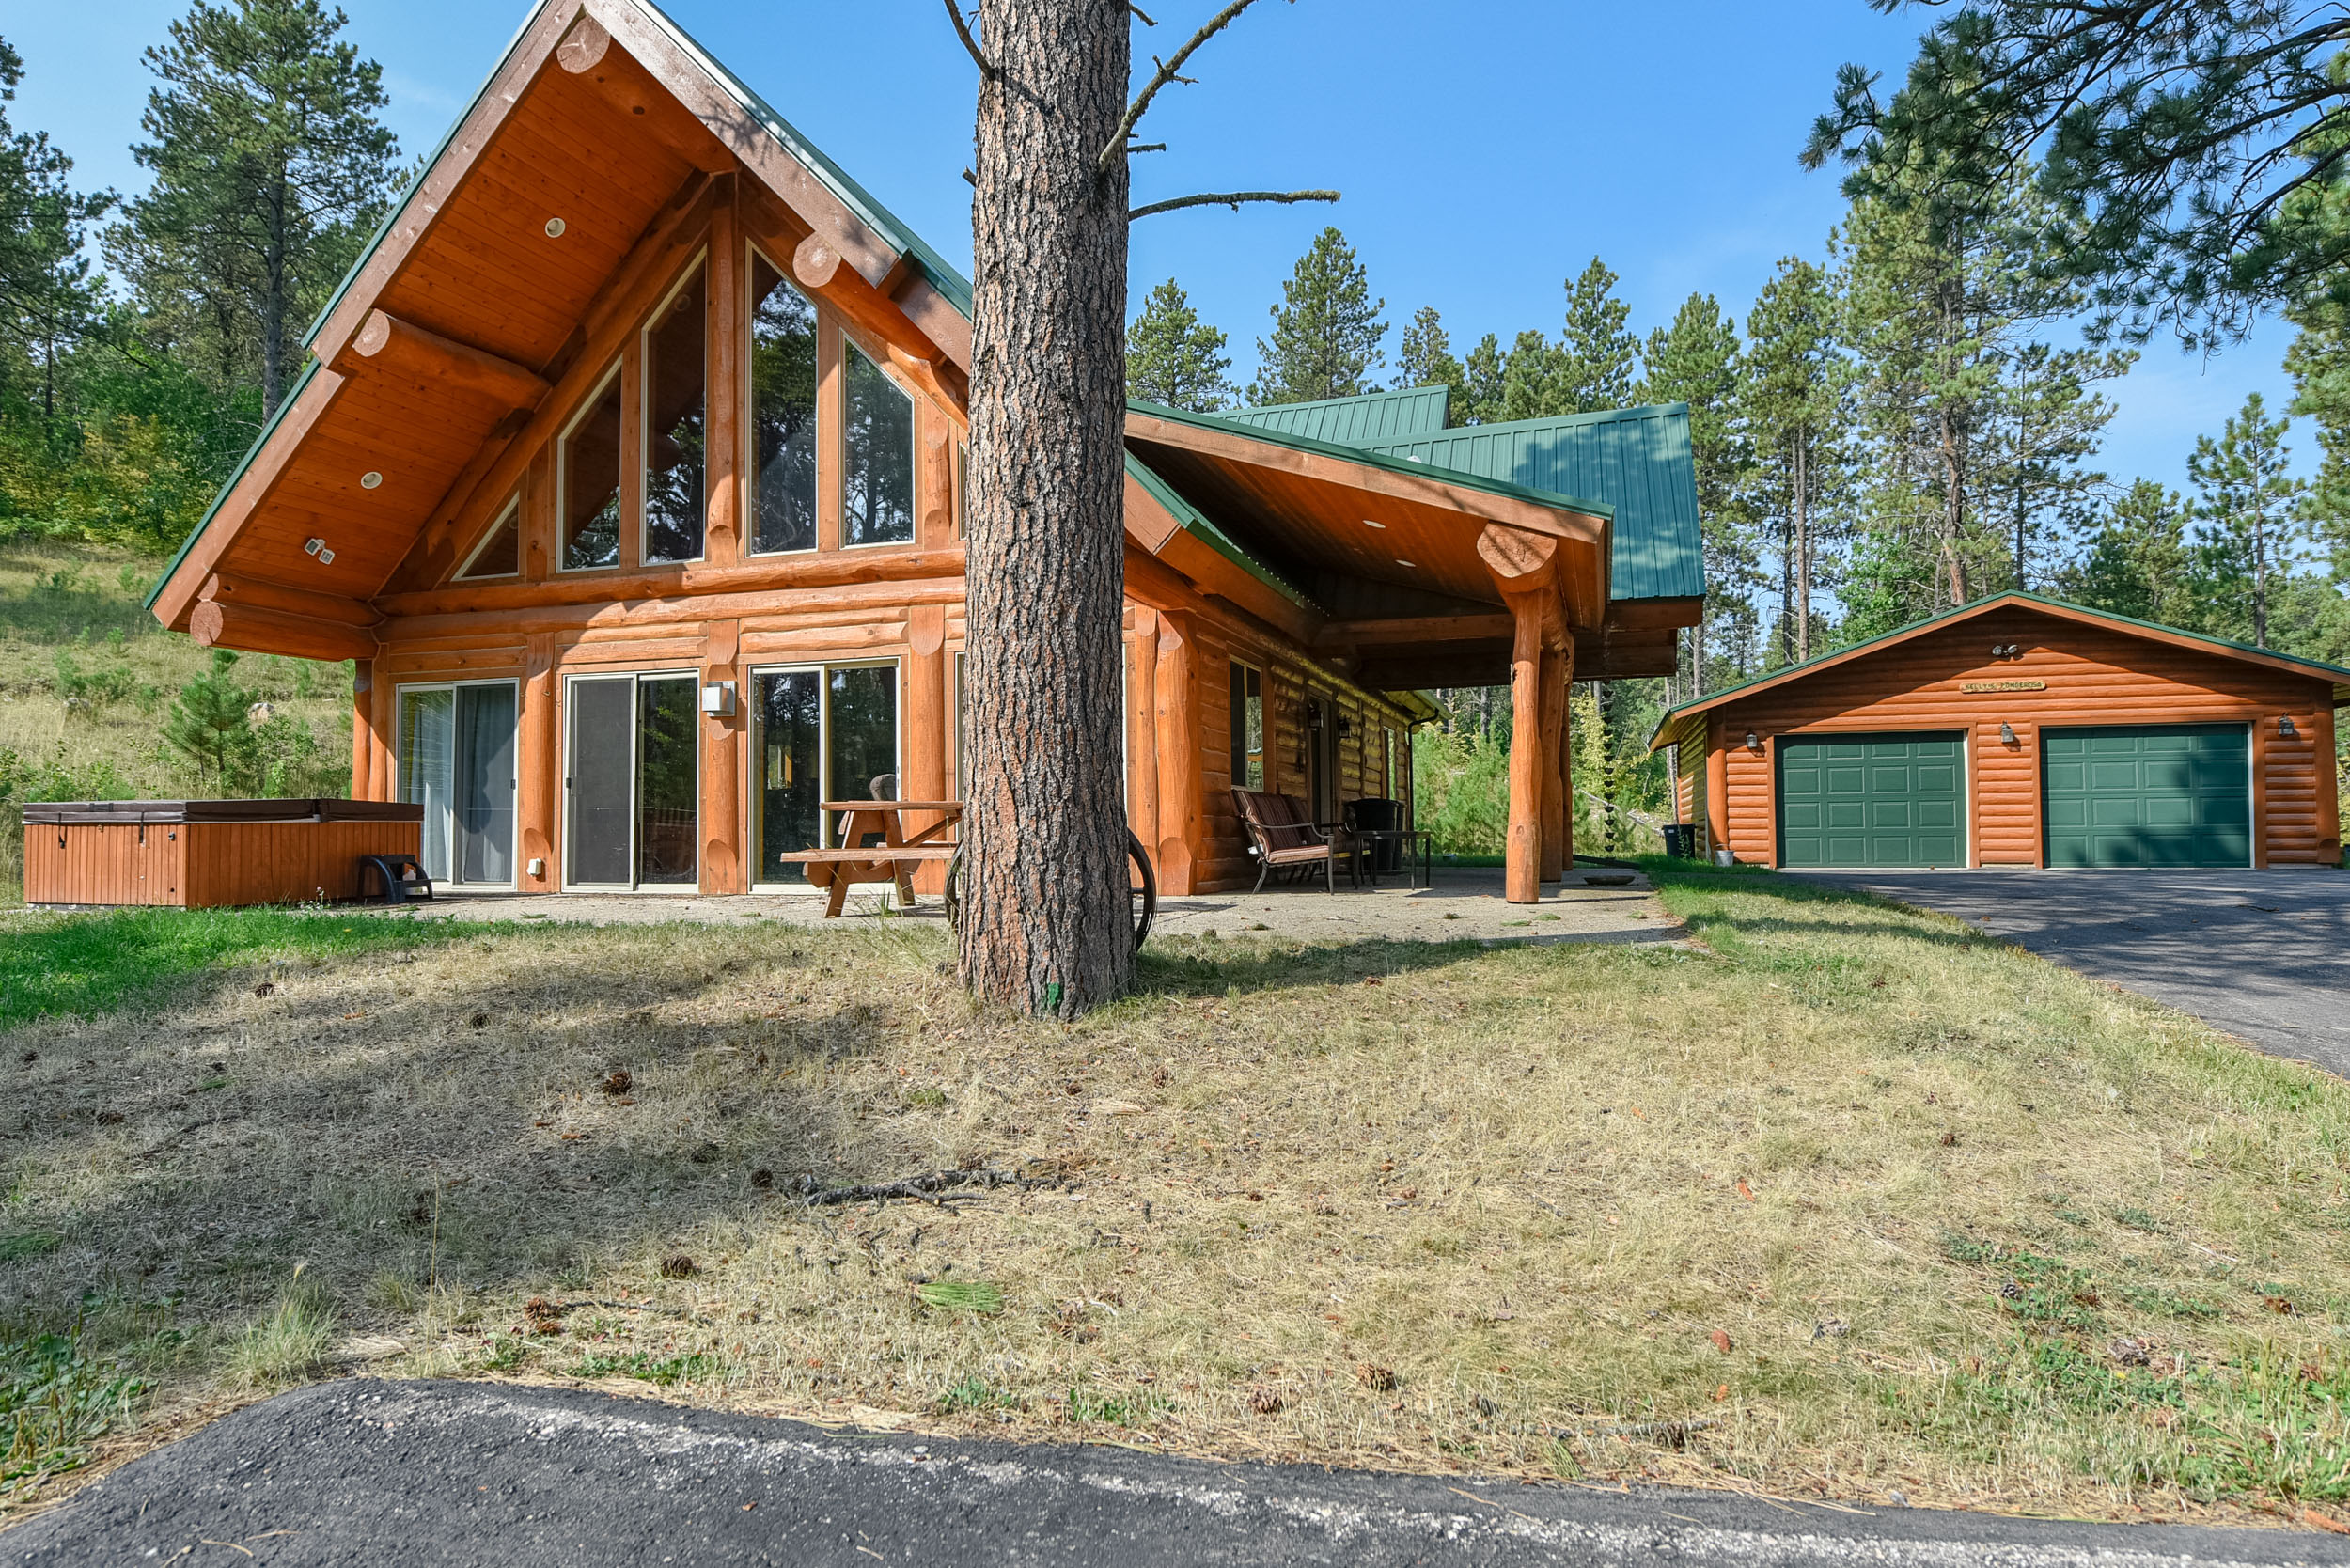 travel arizona pinetop summer in cabins your rental for cool vacation story